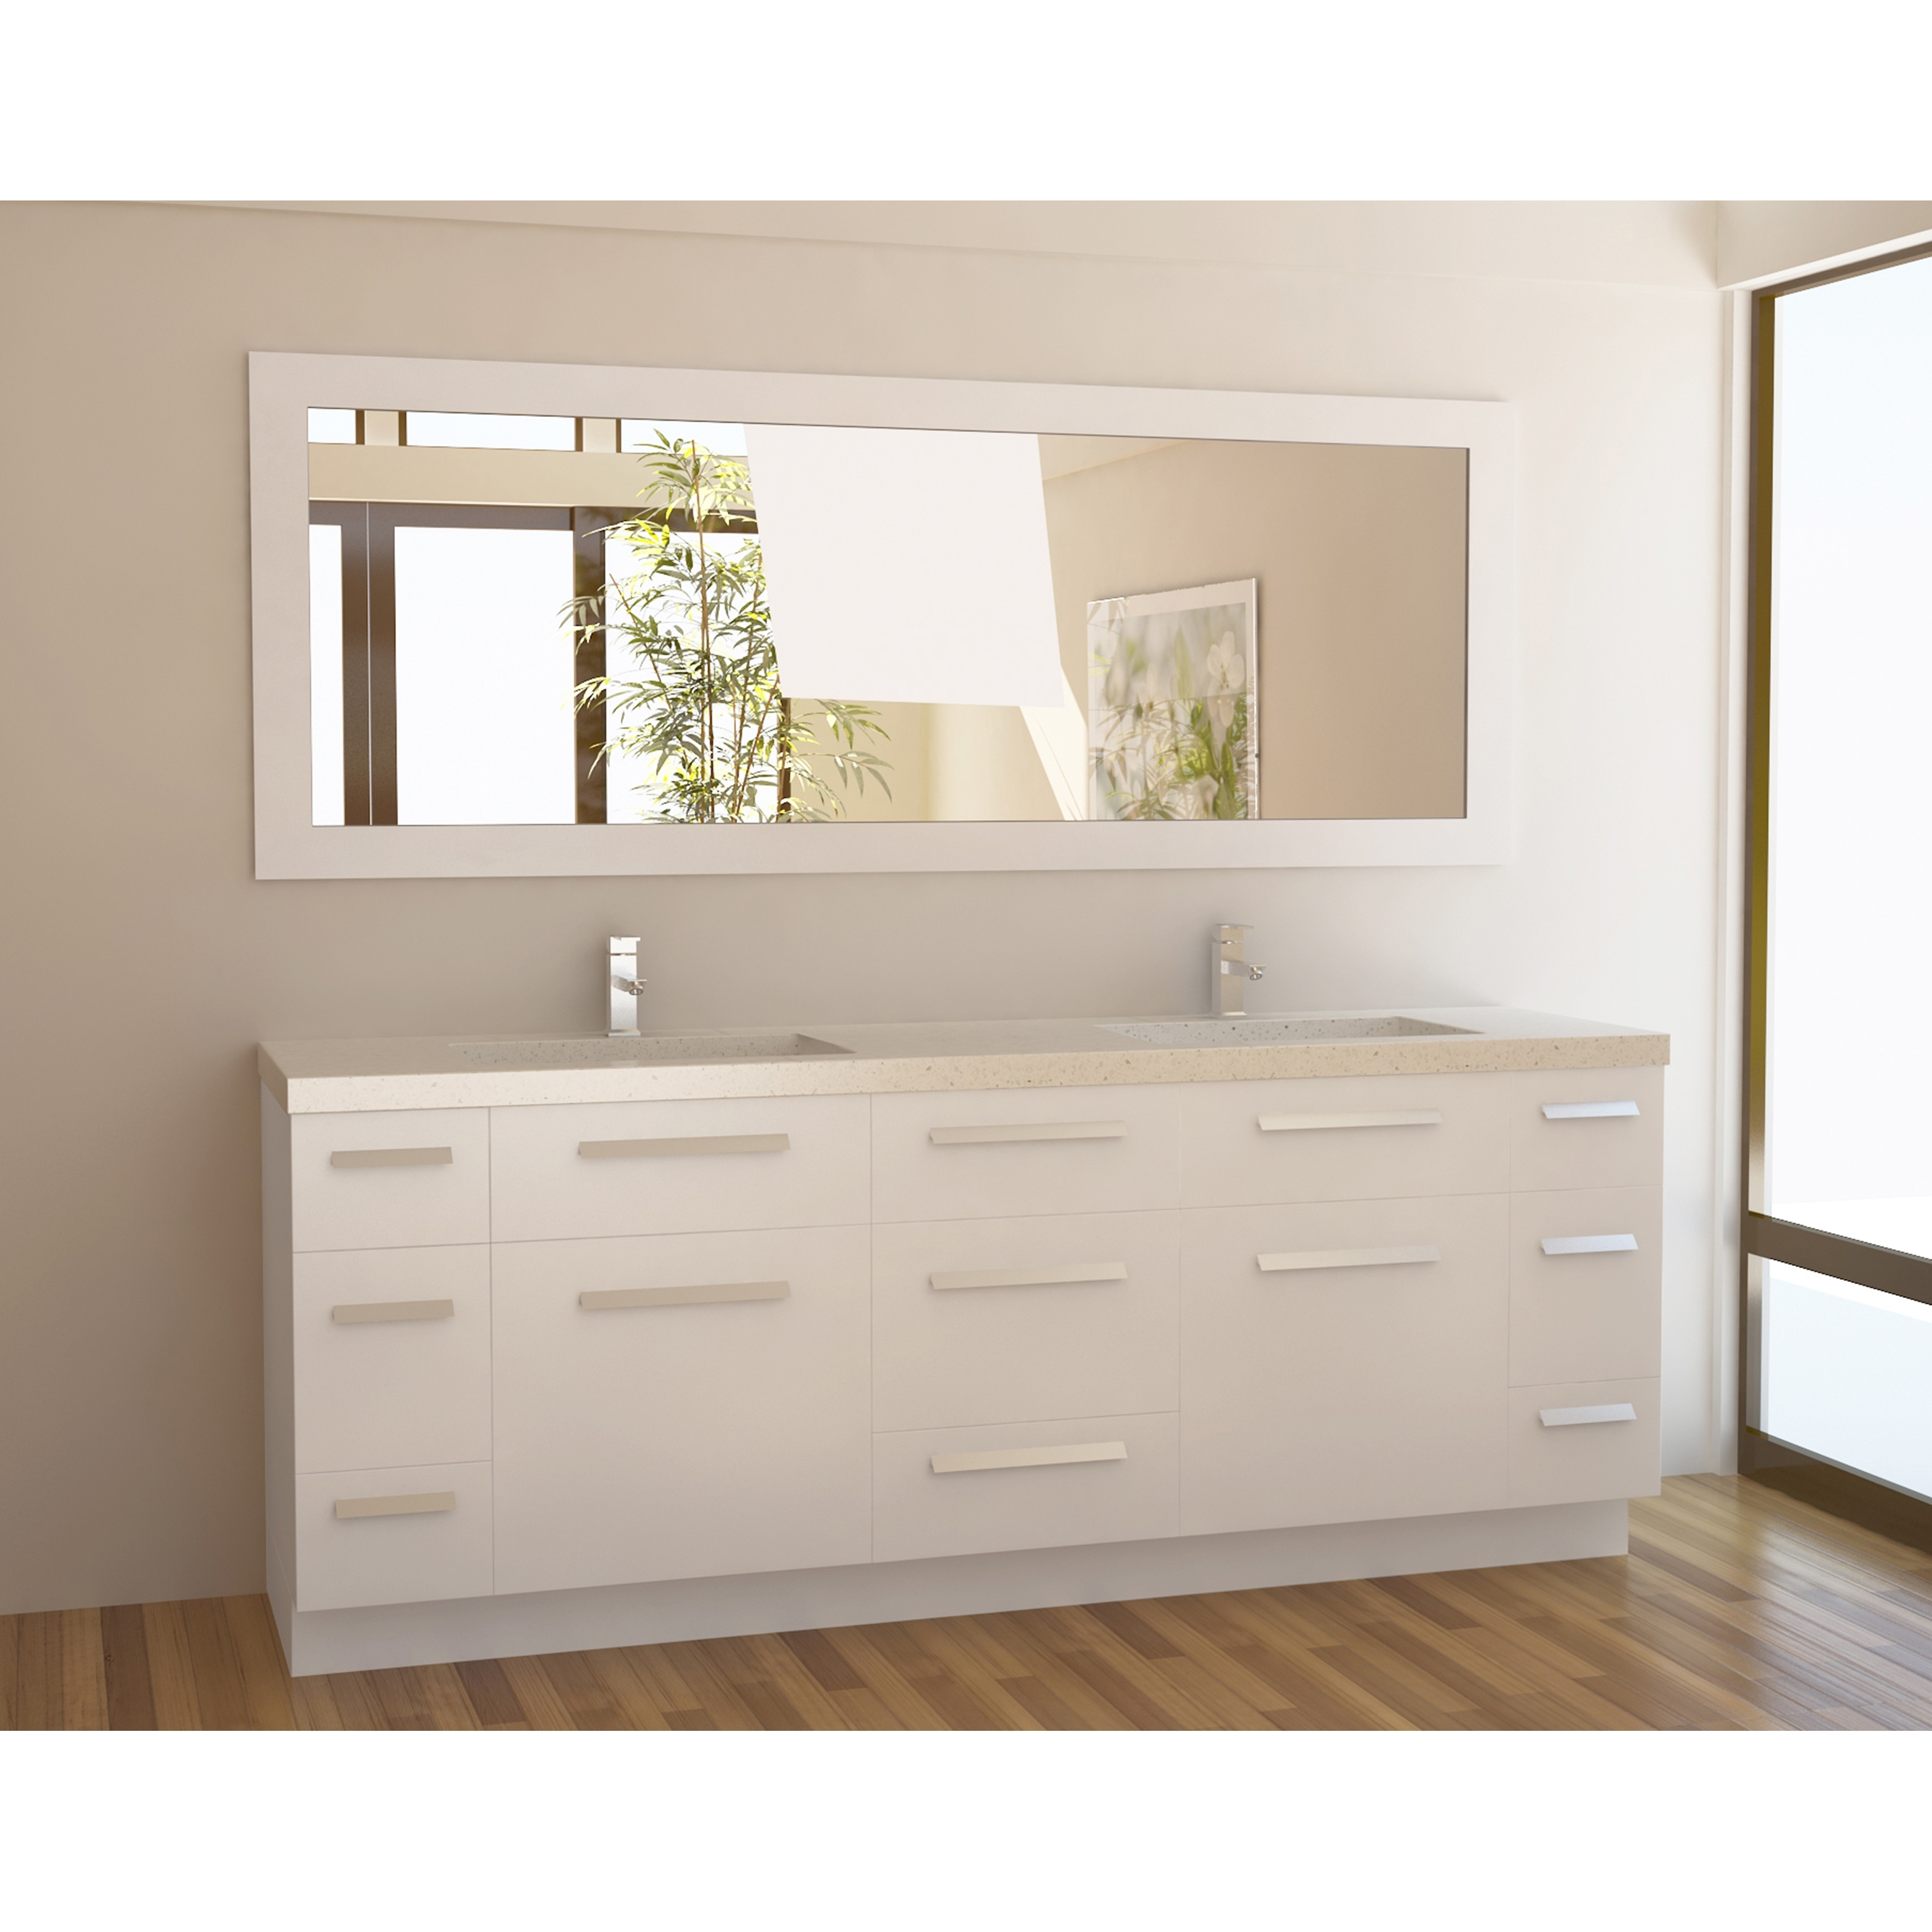 84 Inch Bathroom Vanity With Top84 inch bathroom vanity countertop bathroom vanities